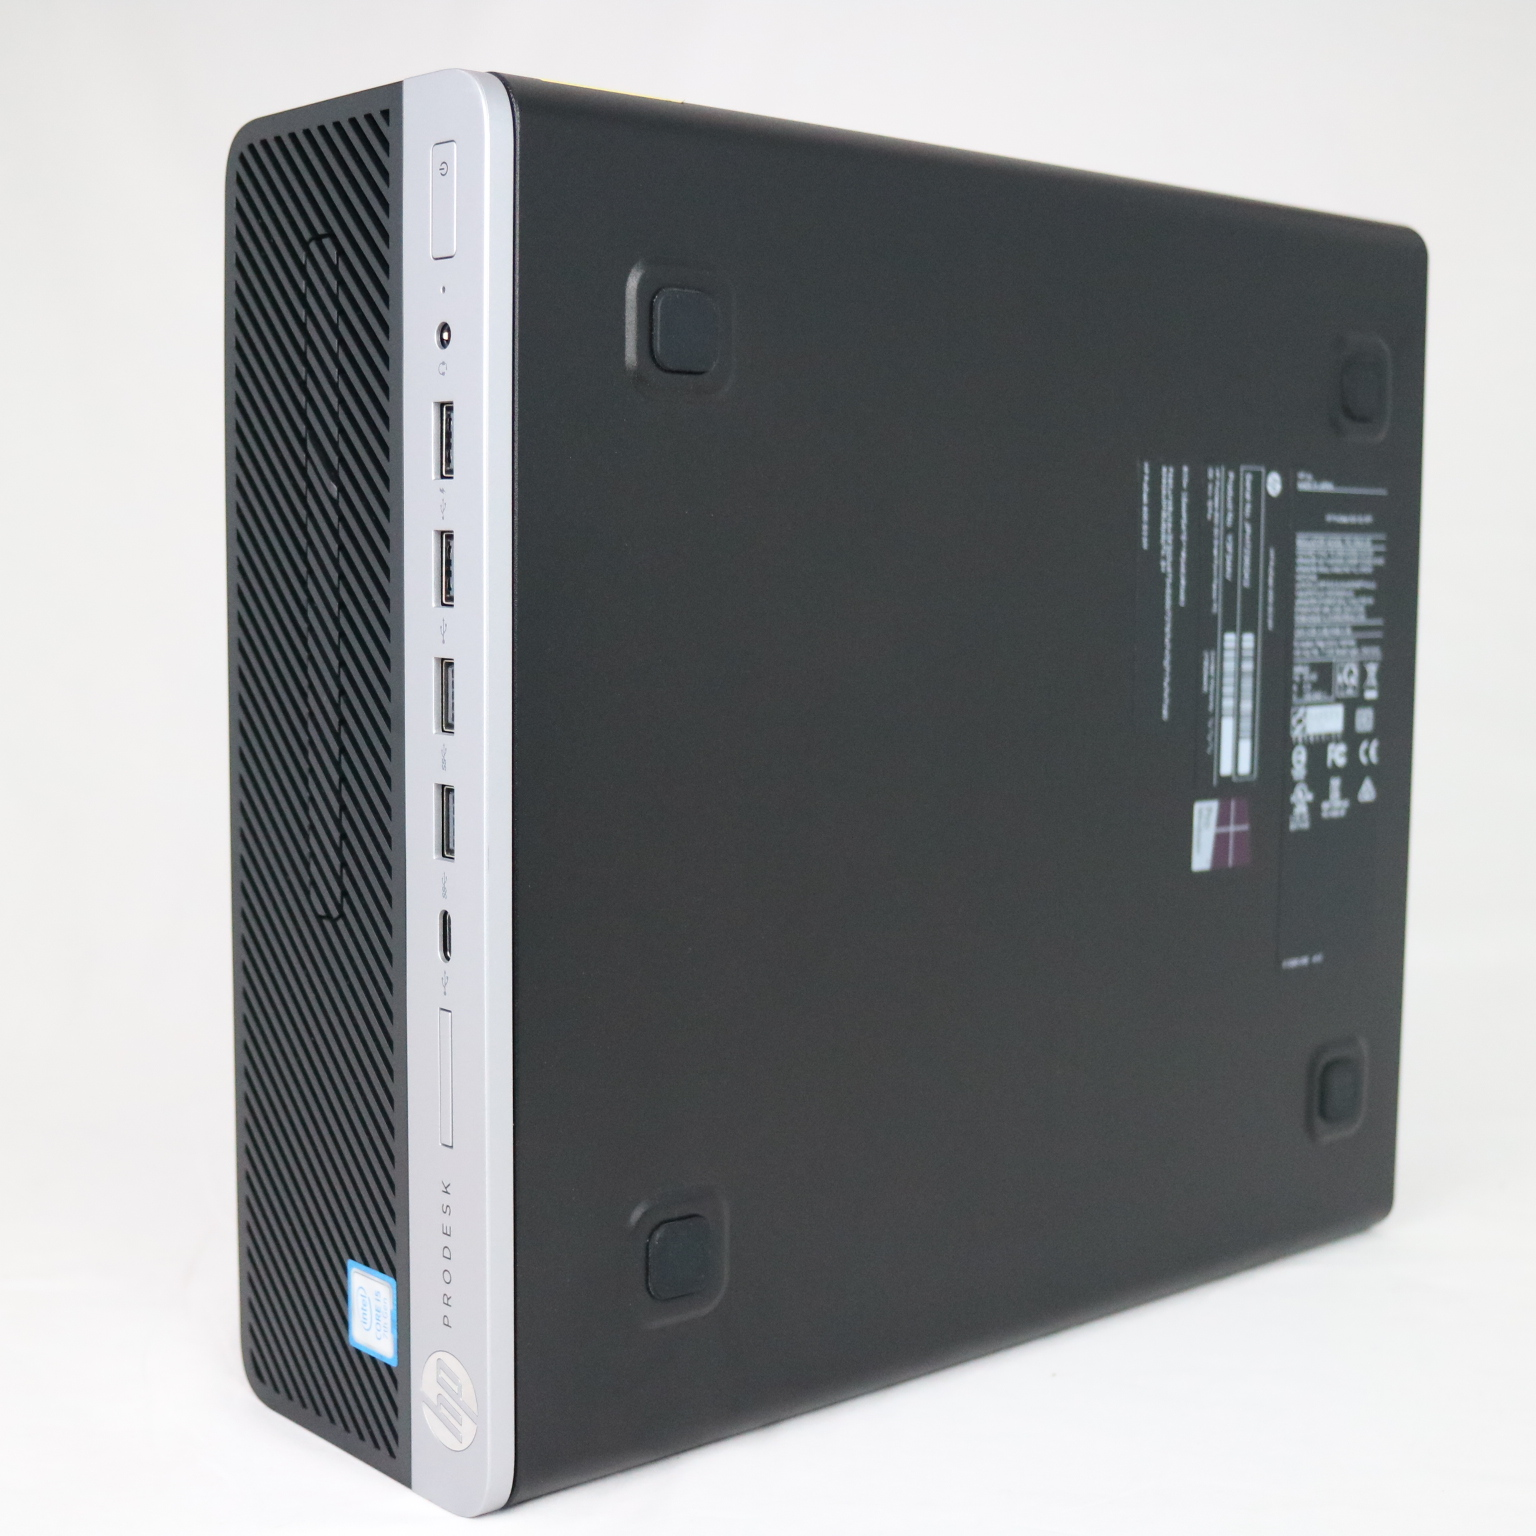 【Windows10】PRODESK 600 G3 SF/ Core i5-6600/ 3.3GHz/ 8GB/ HDD 500GB